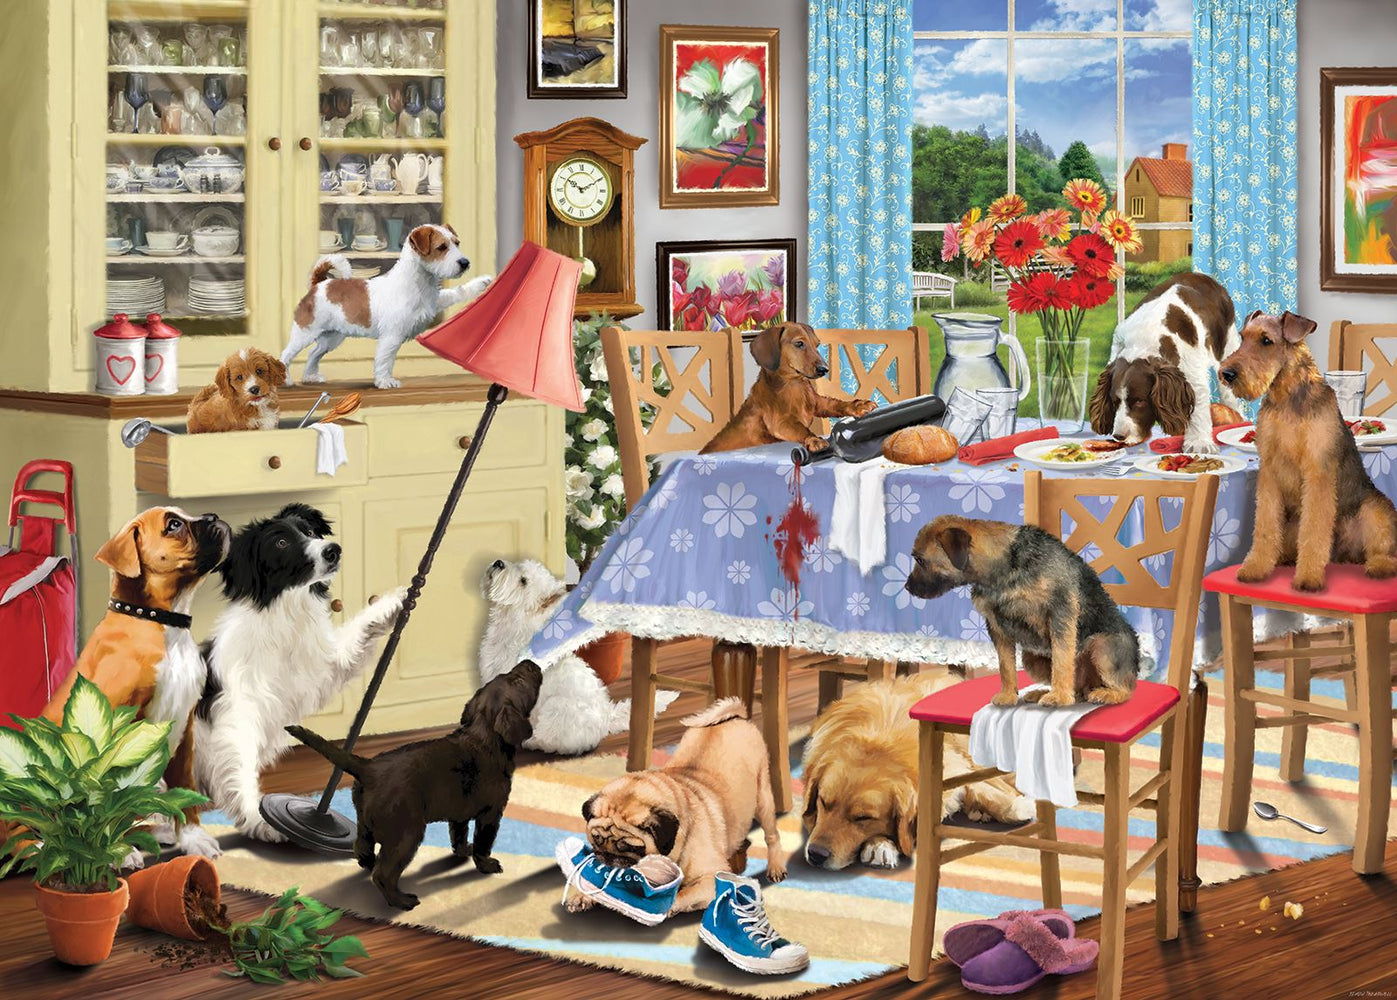 Dogs In The Dining Room 1000 Piece Jigsaw Puzzle